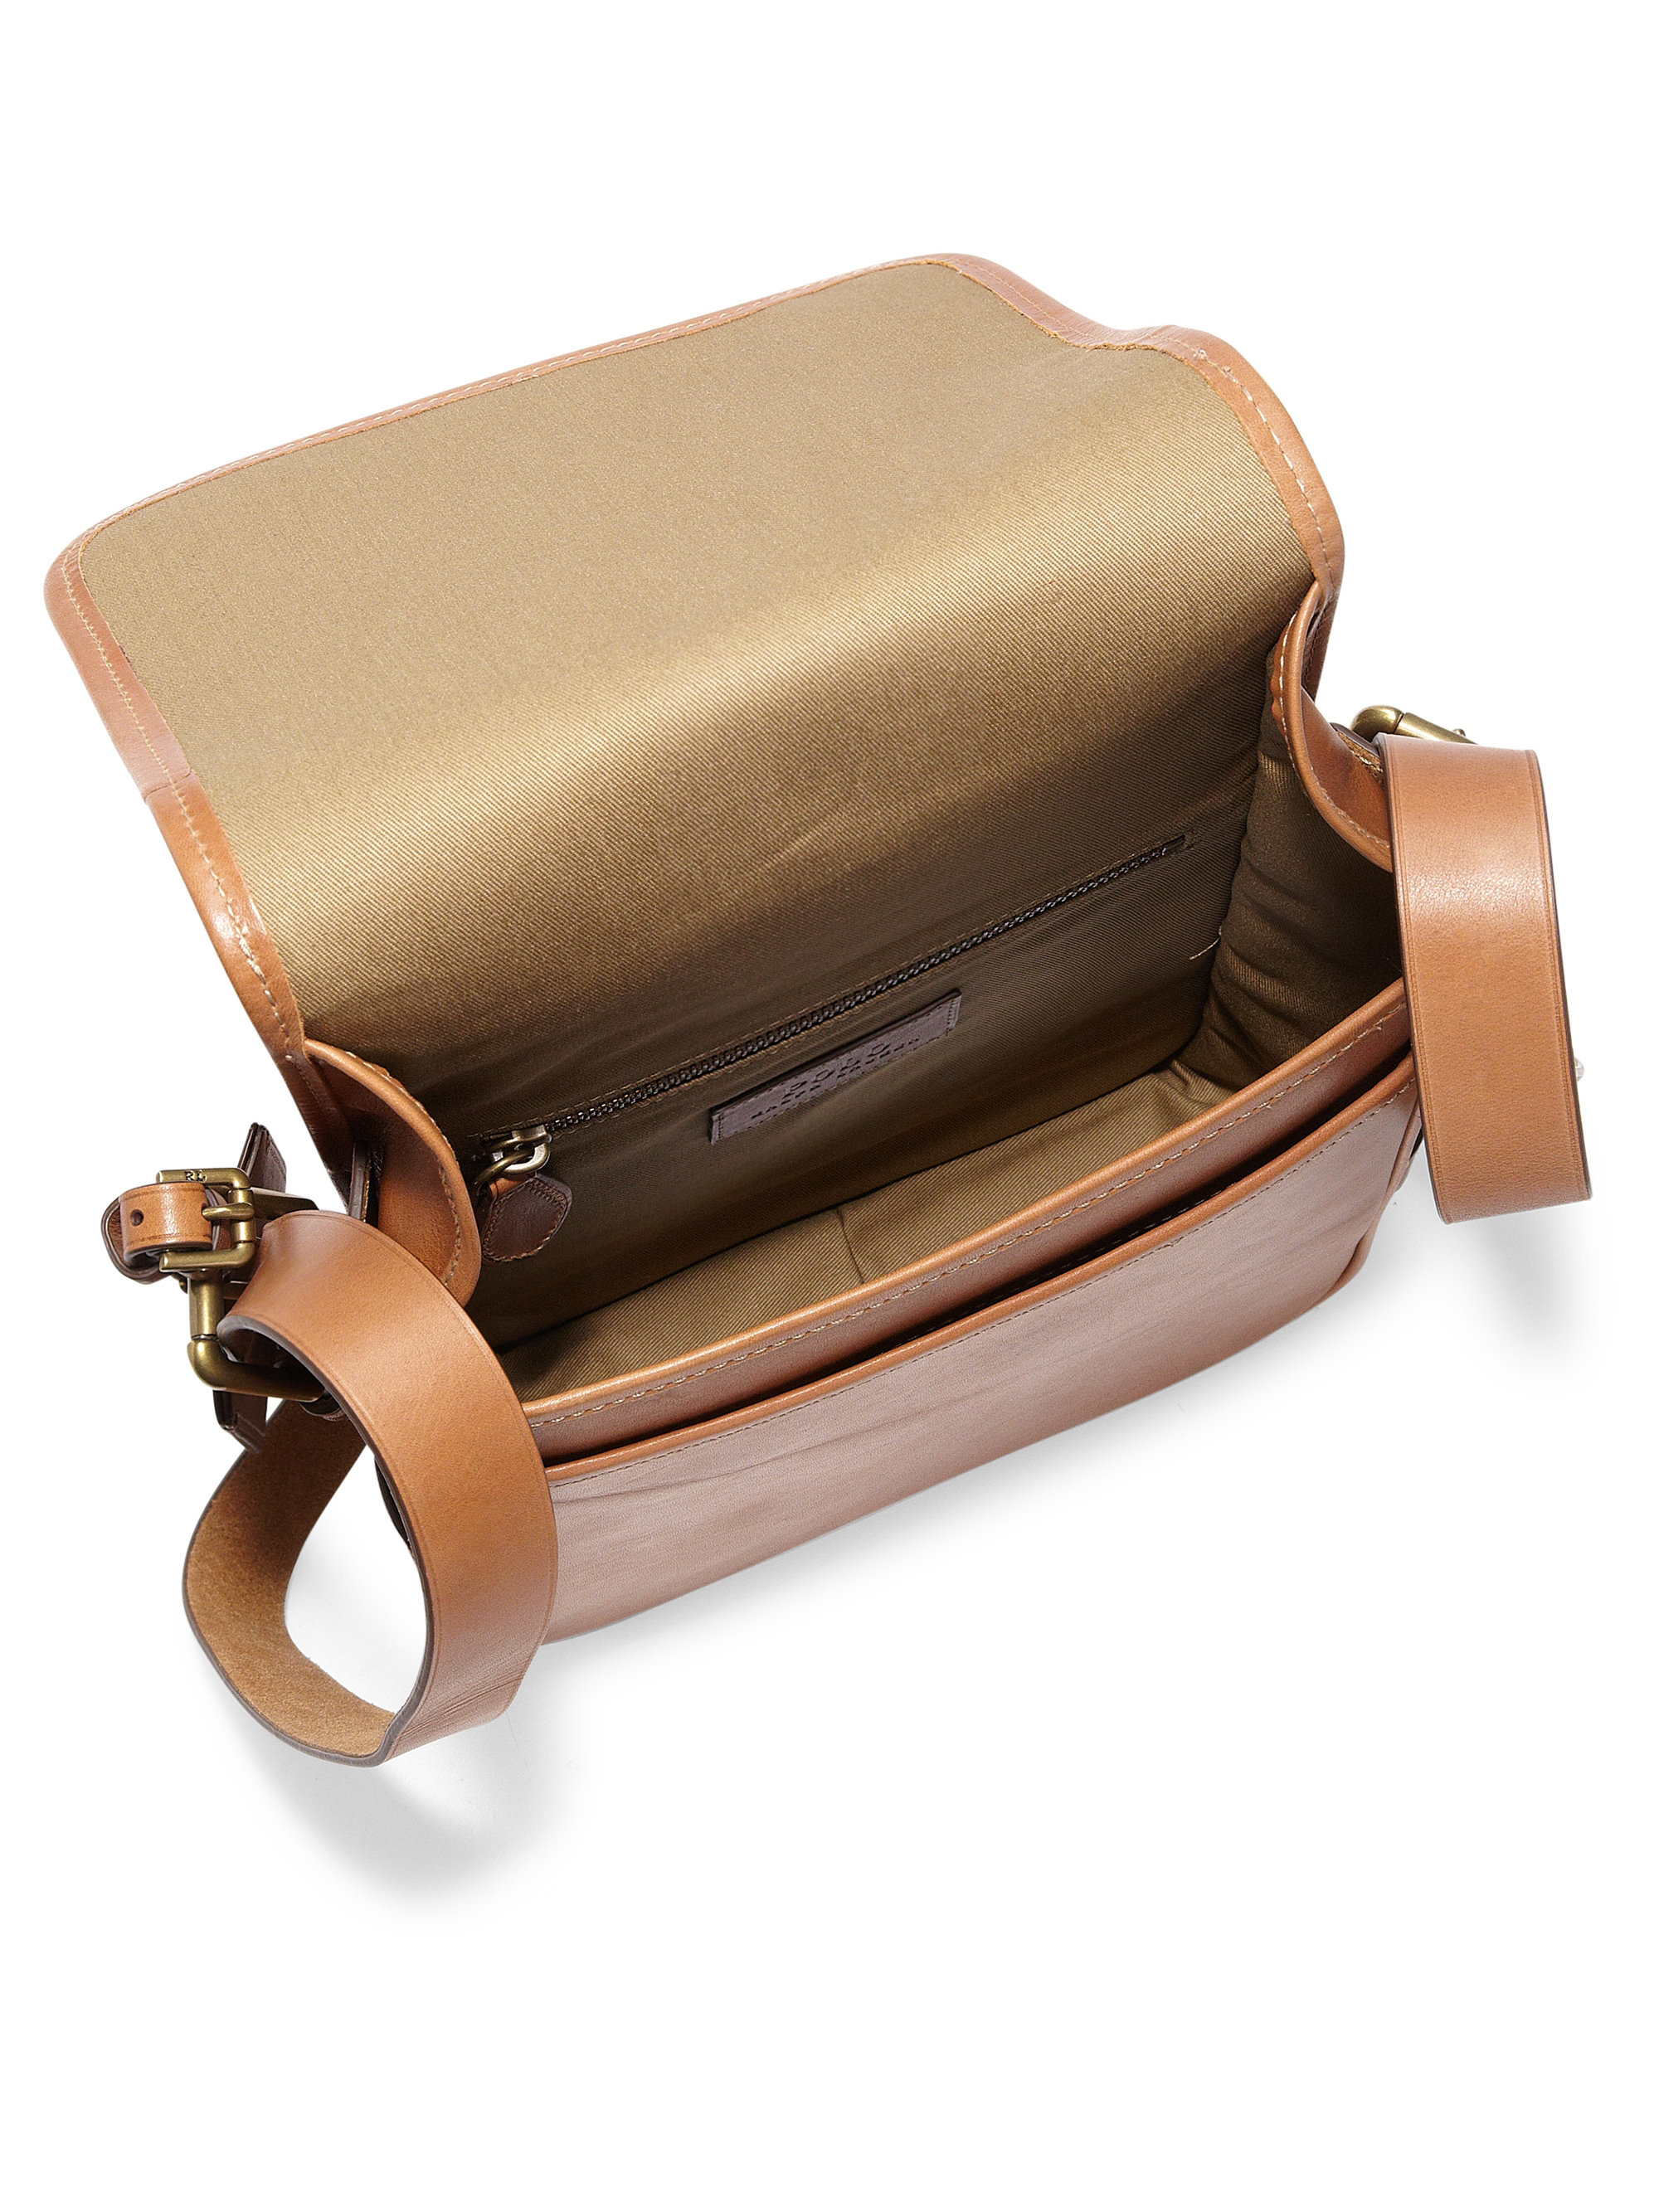 118dbfab1179 ... closeout lyst polo ralph lauren compact leather messenger bag in brown  for men 03871 f8620